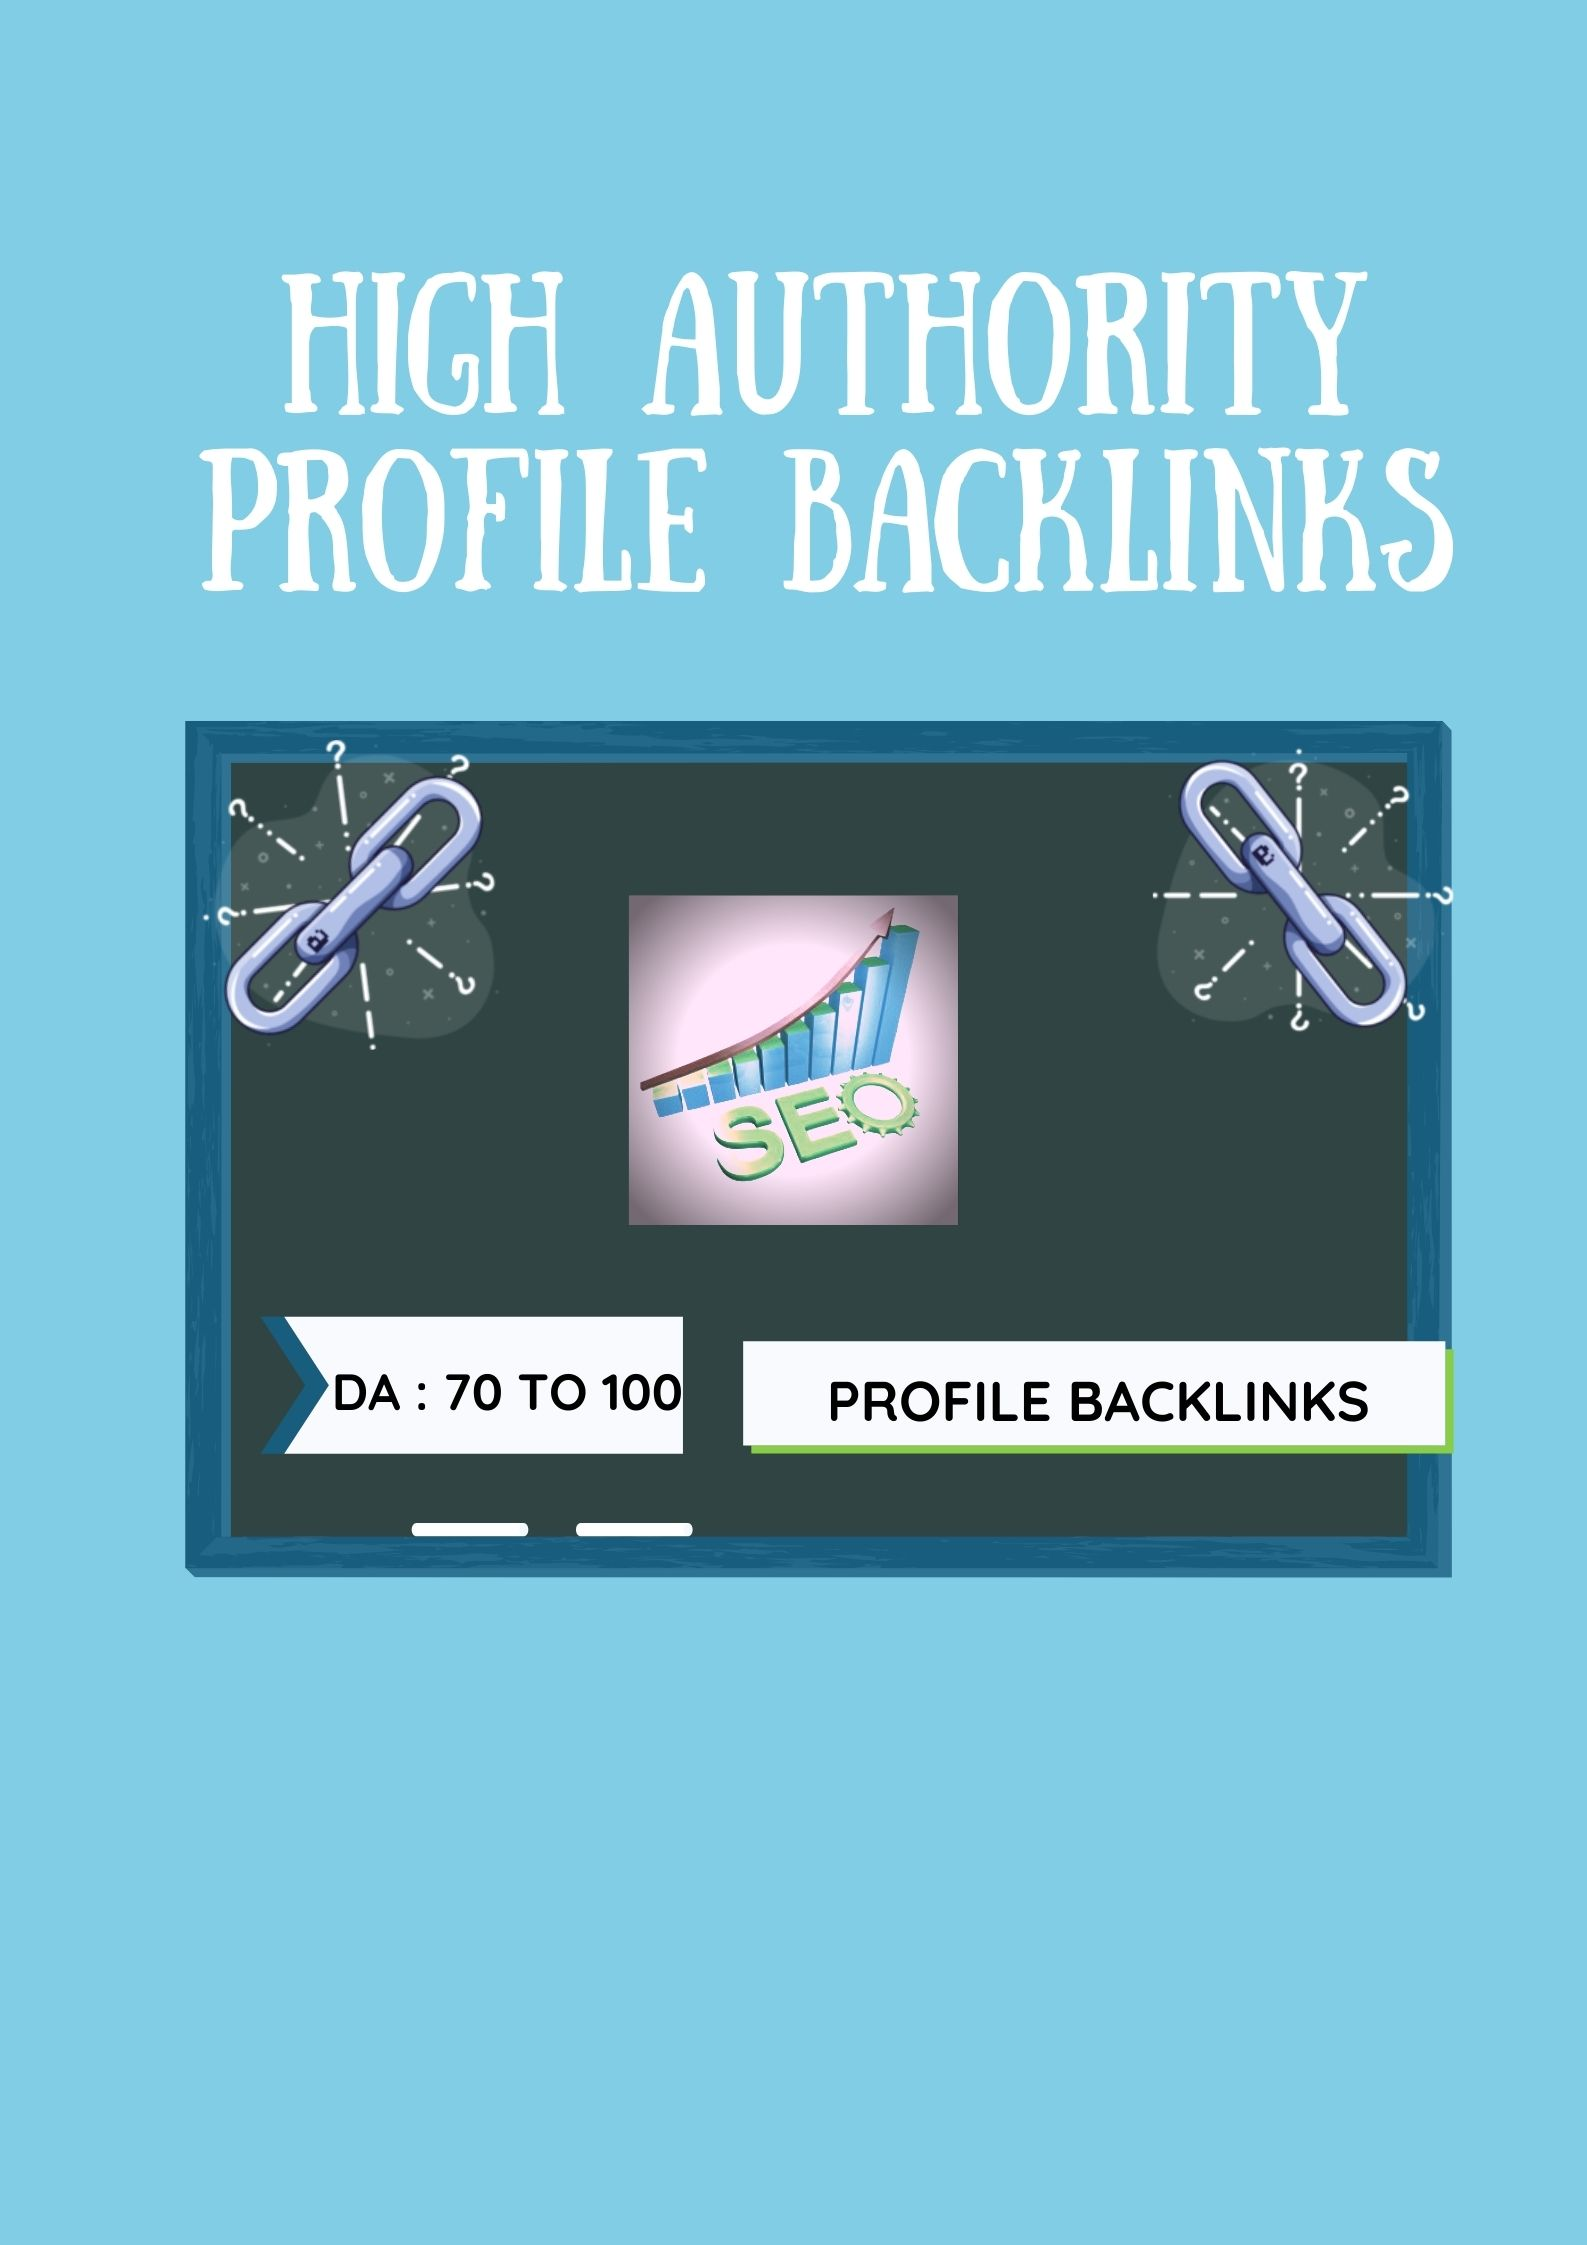 I will create 50 high authority profile backlinks.50 profile backlinks with 70+ to 100 DA